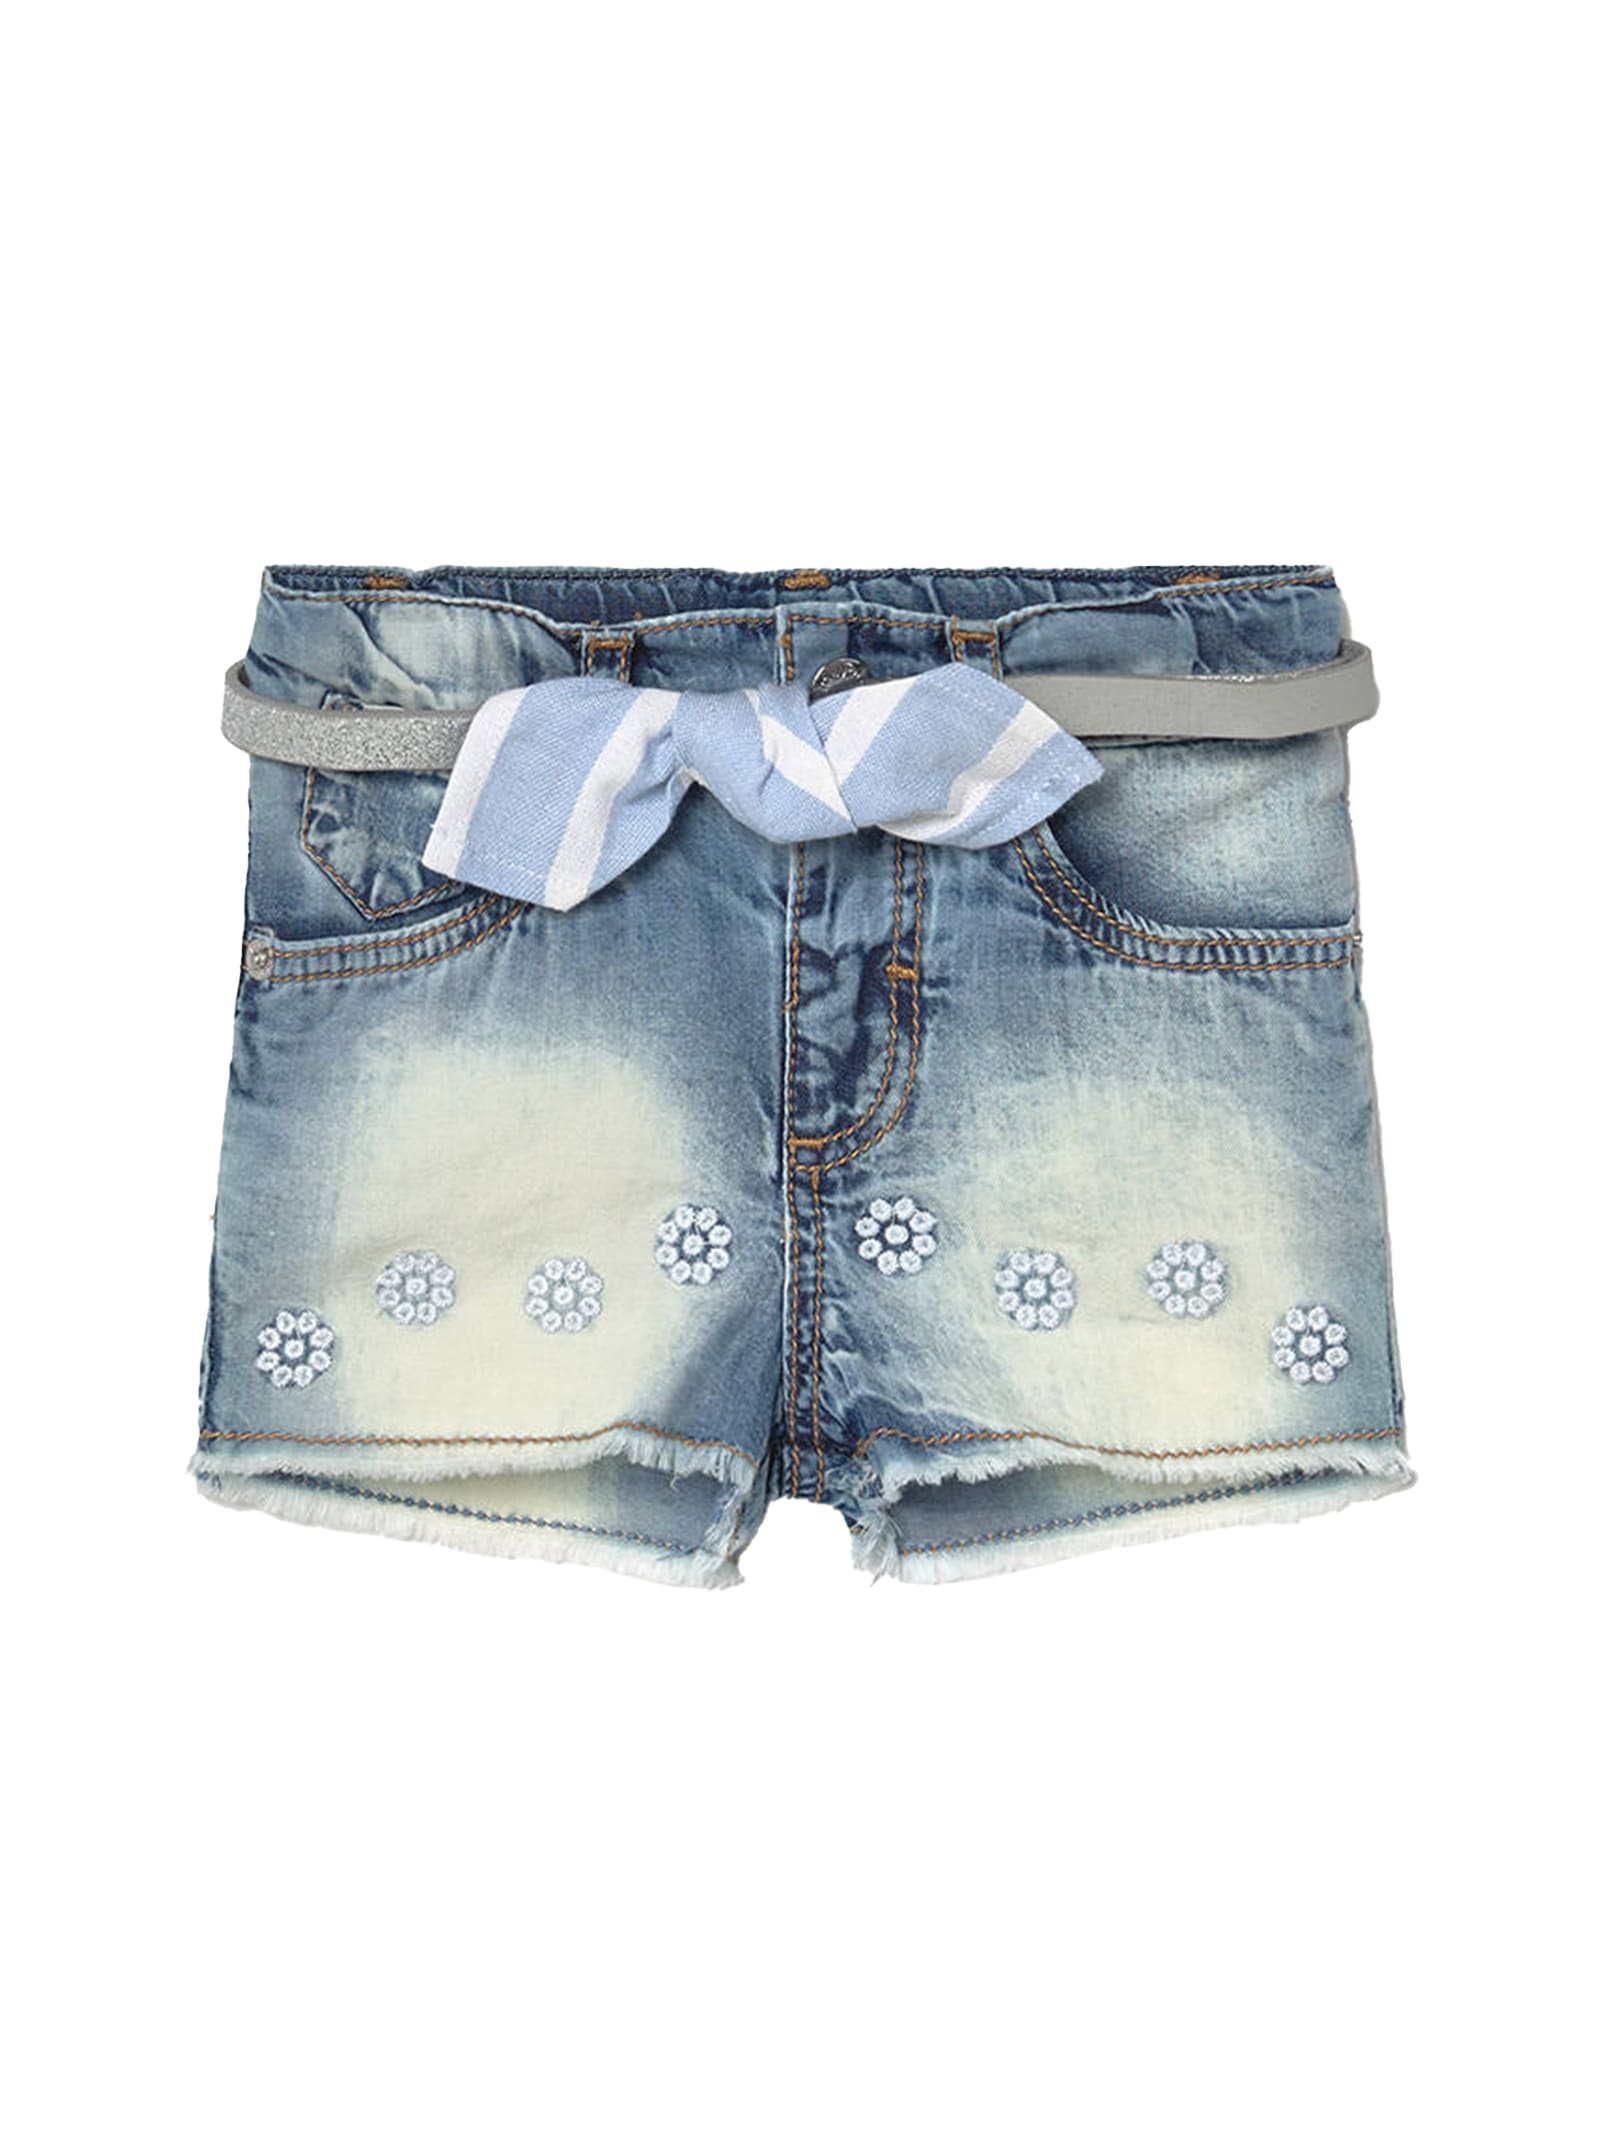 Shorts Jeans Con Fiori MAYORAL | Shorts | 1225085